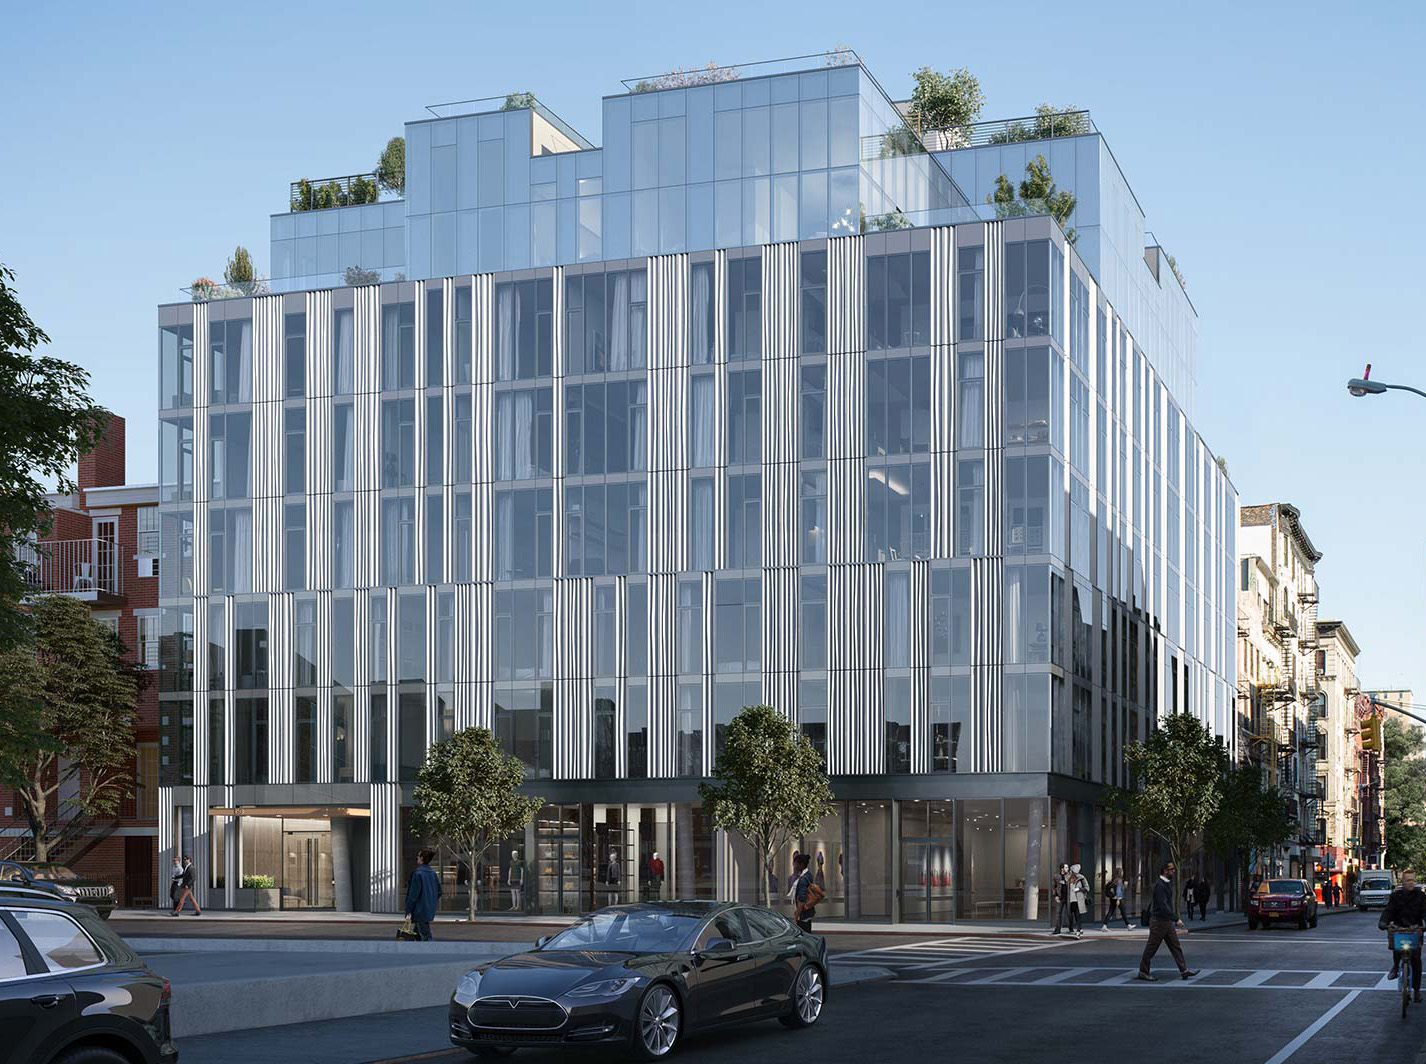 GEA Projects in the News: Construction is moving along quickly at 150 Rivington!